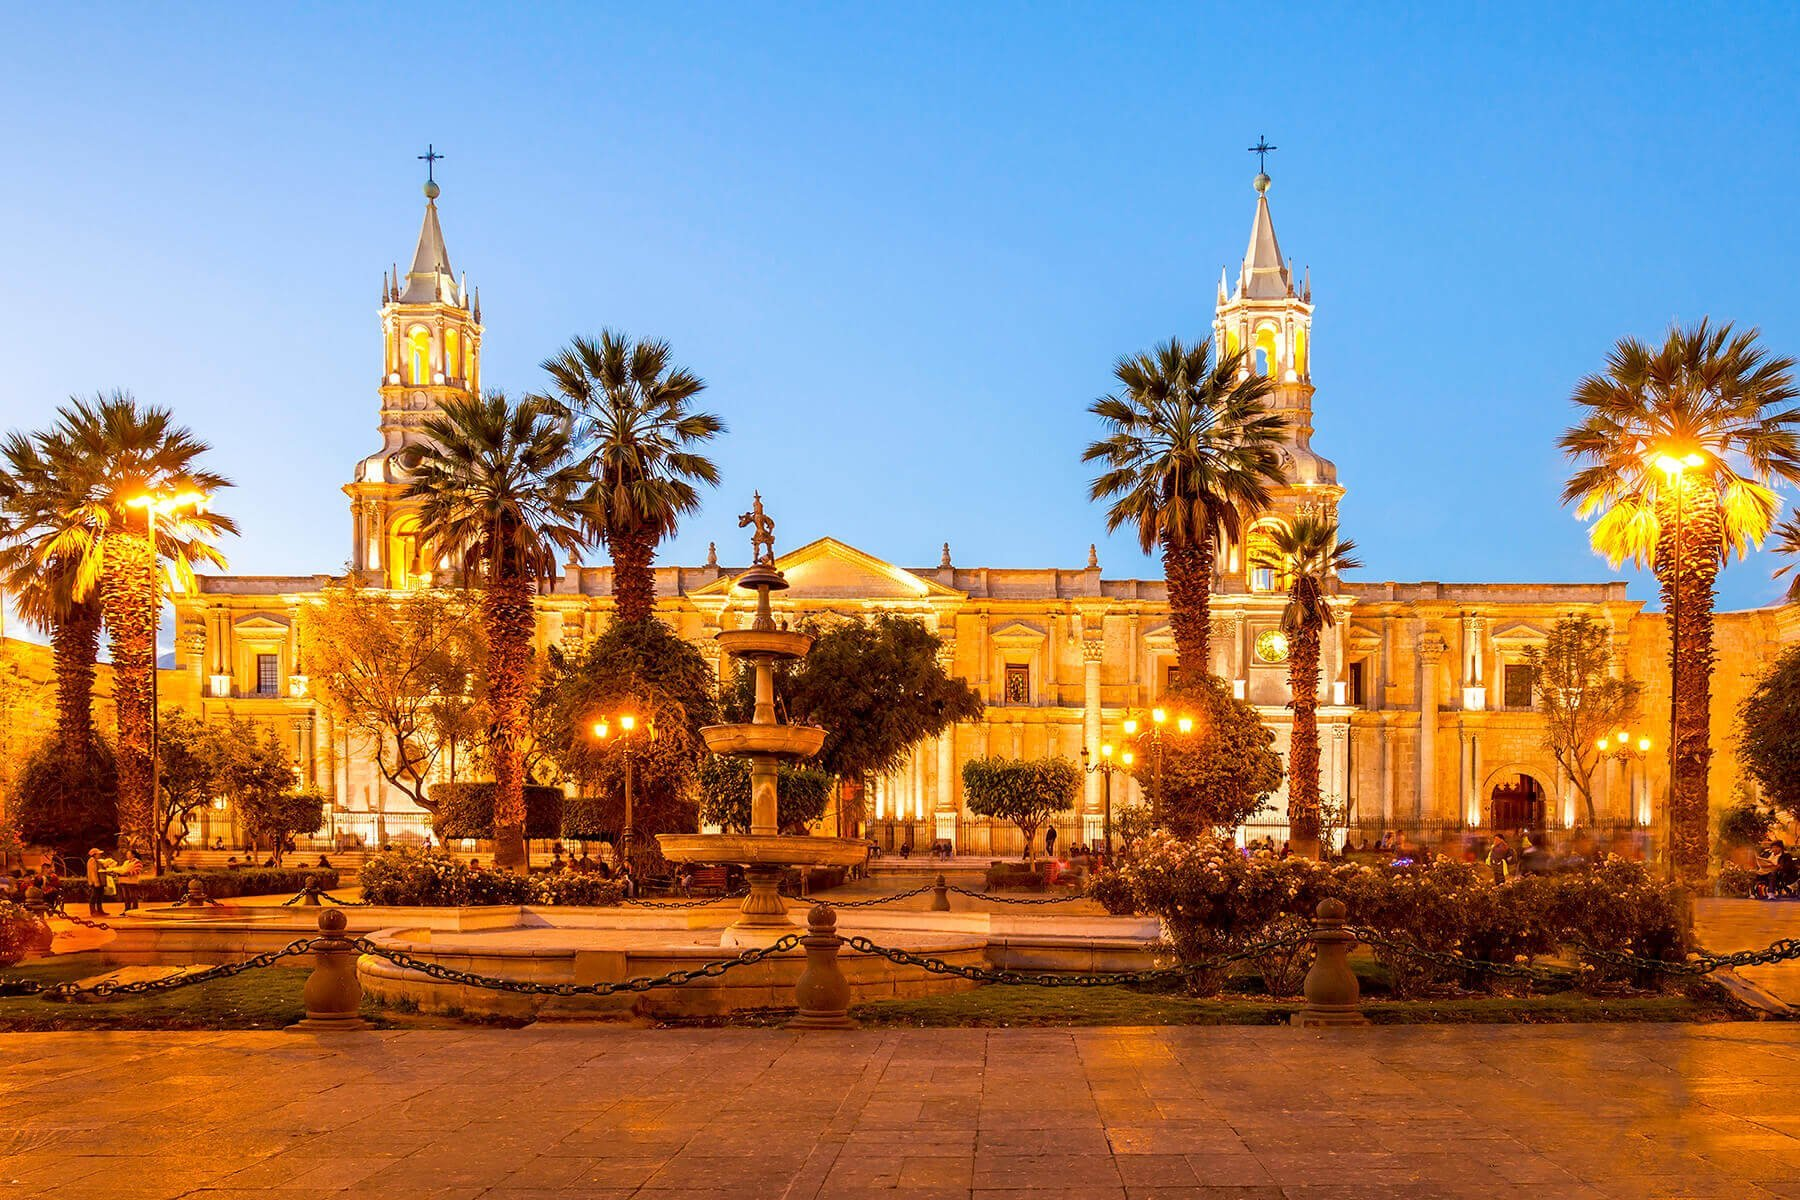 Arequipa - Plaza de Armas with its beautiful cathedral during sunset